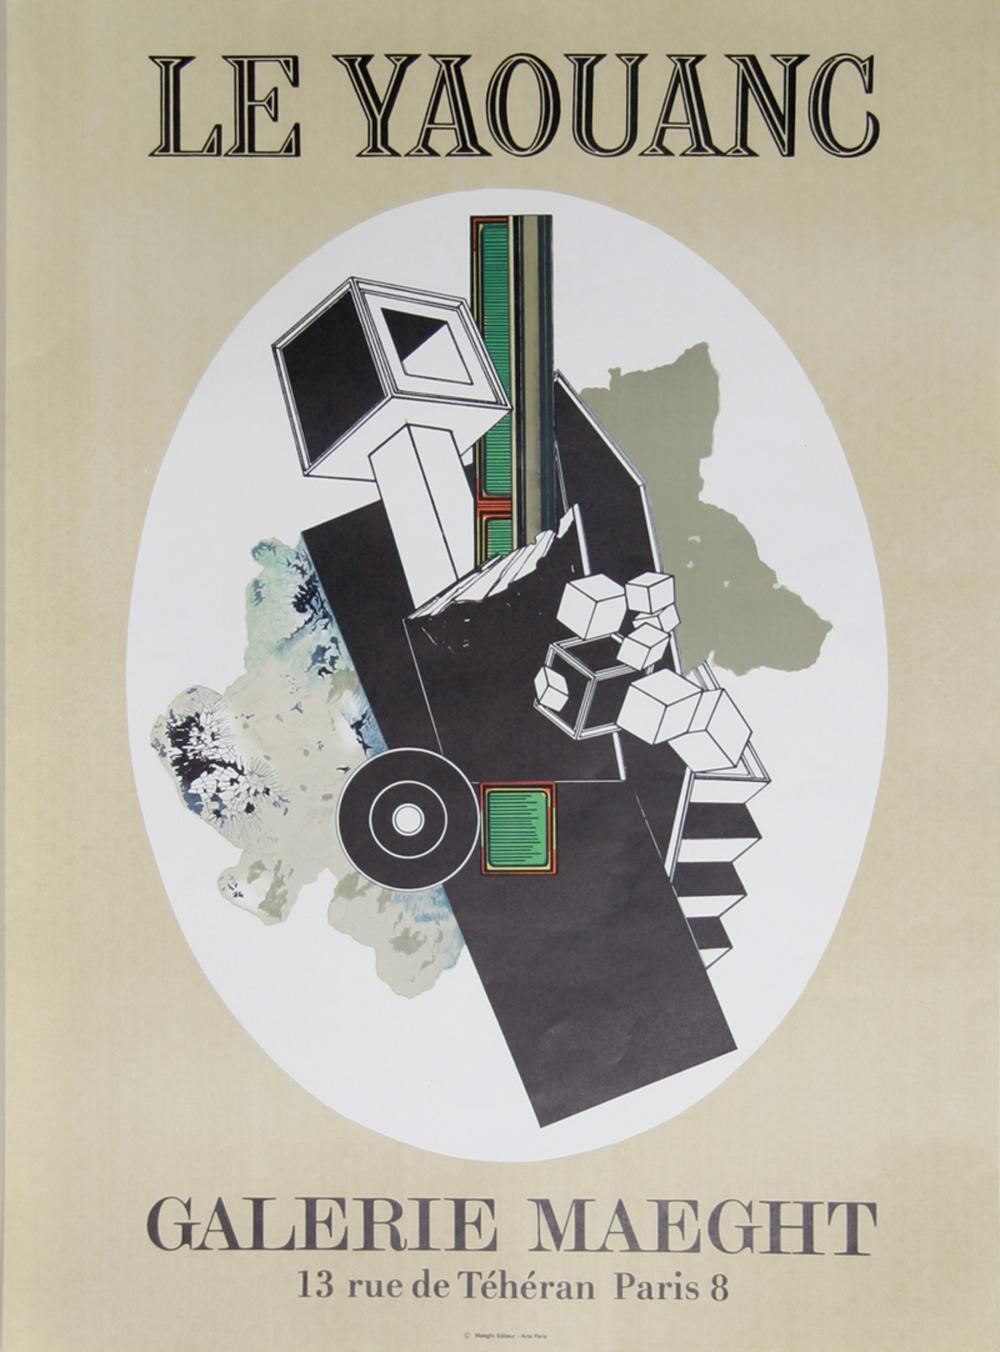 Alain Le Yaouanc, Galerie Maeght, Lithograph Poster